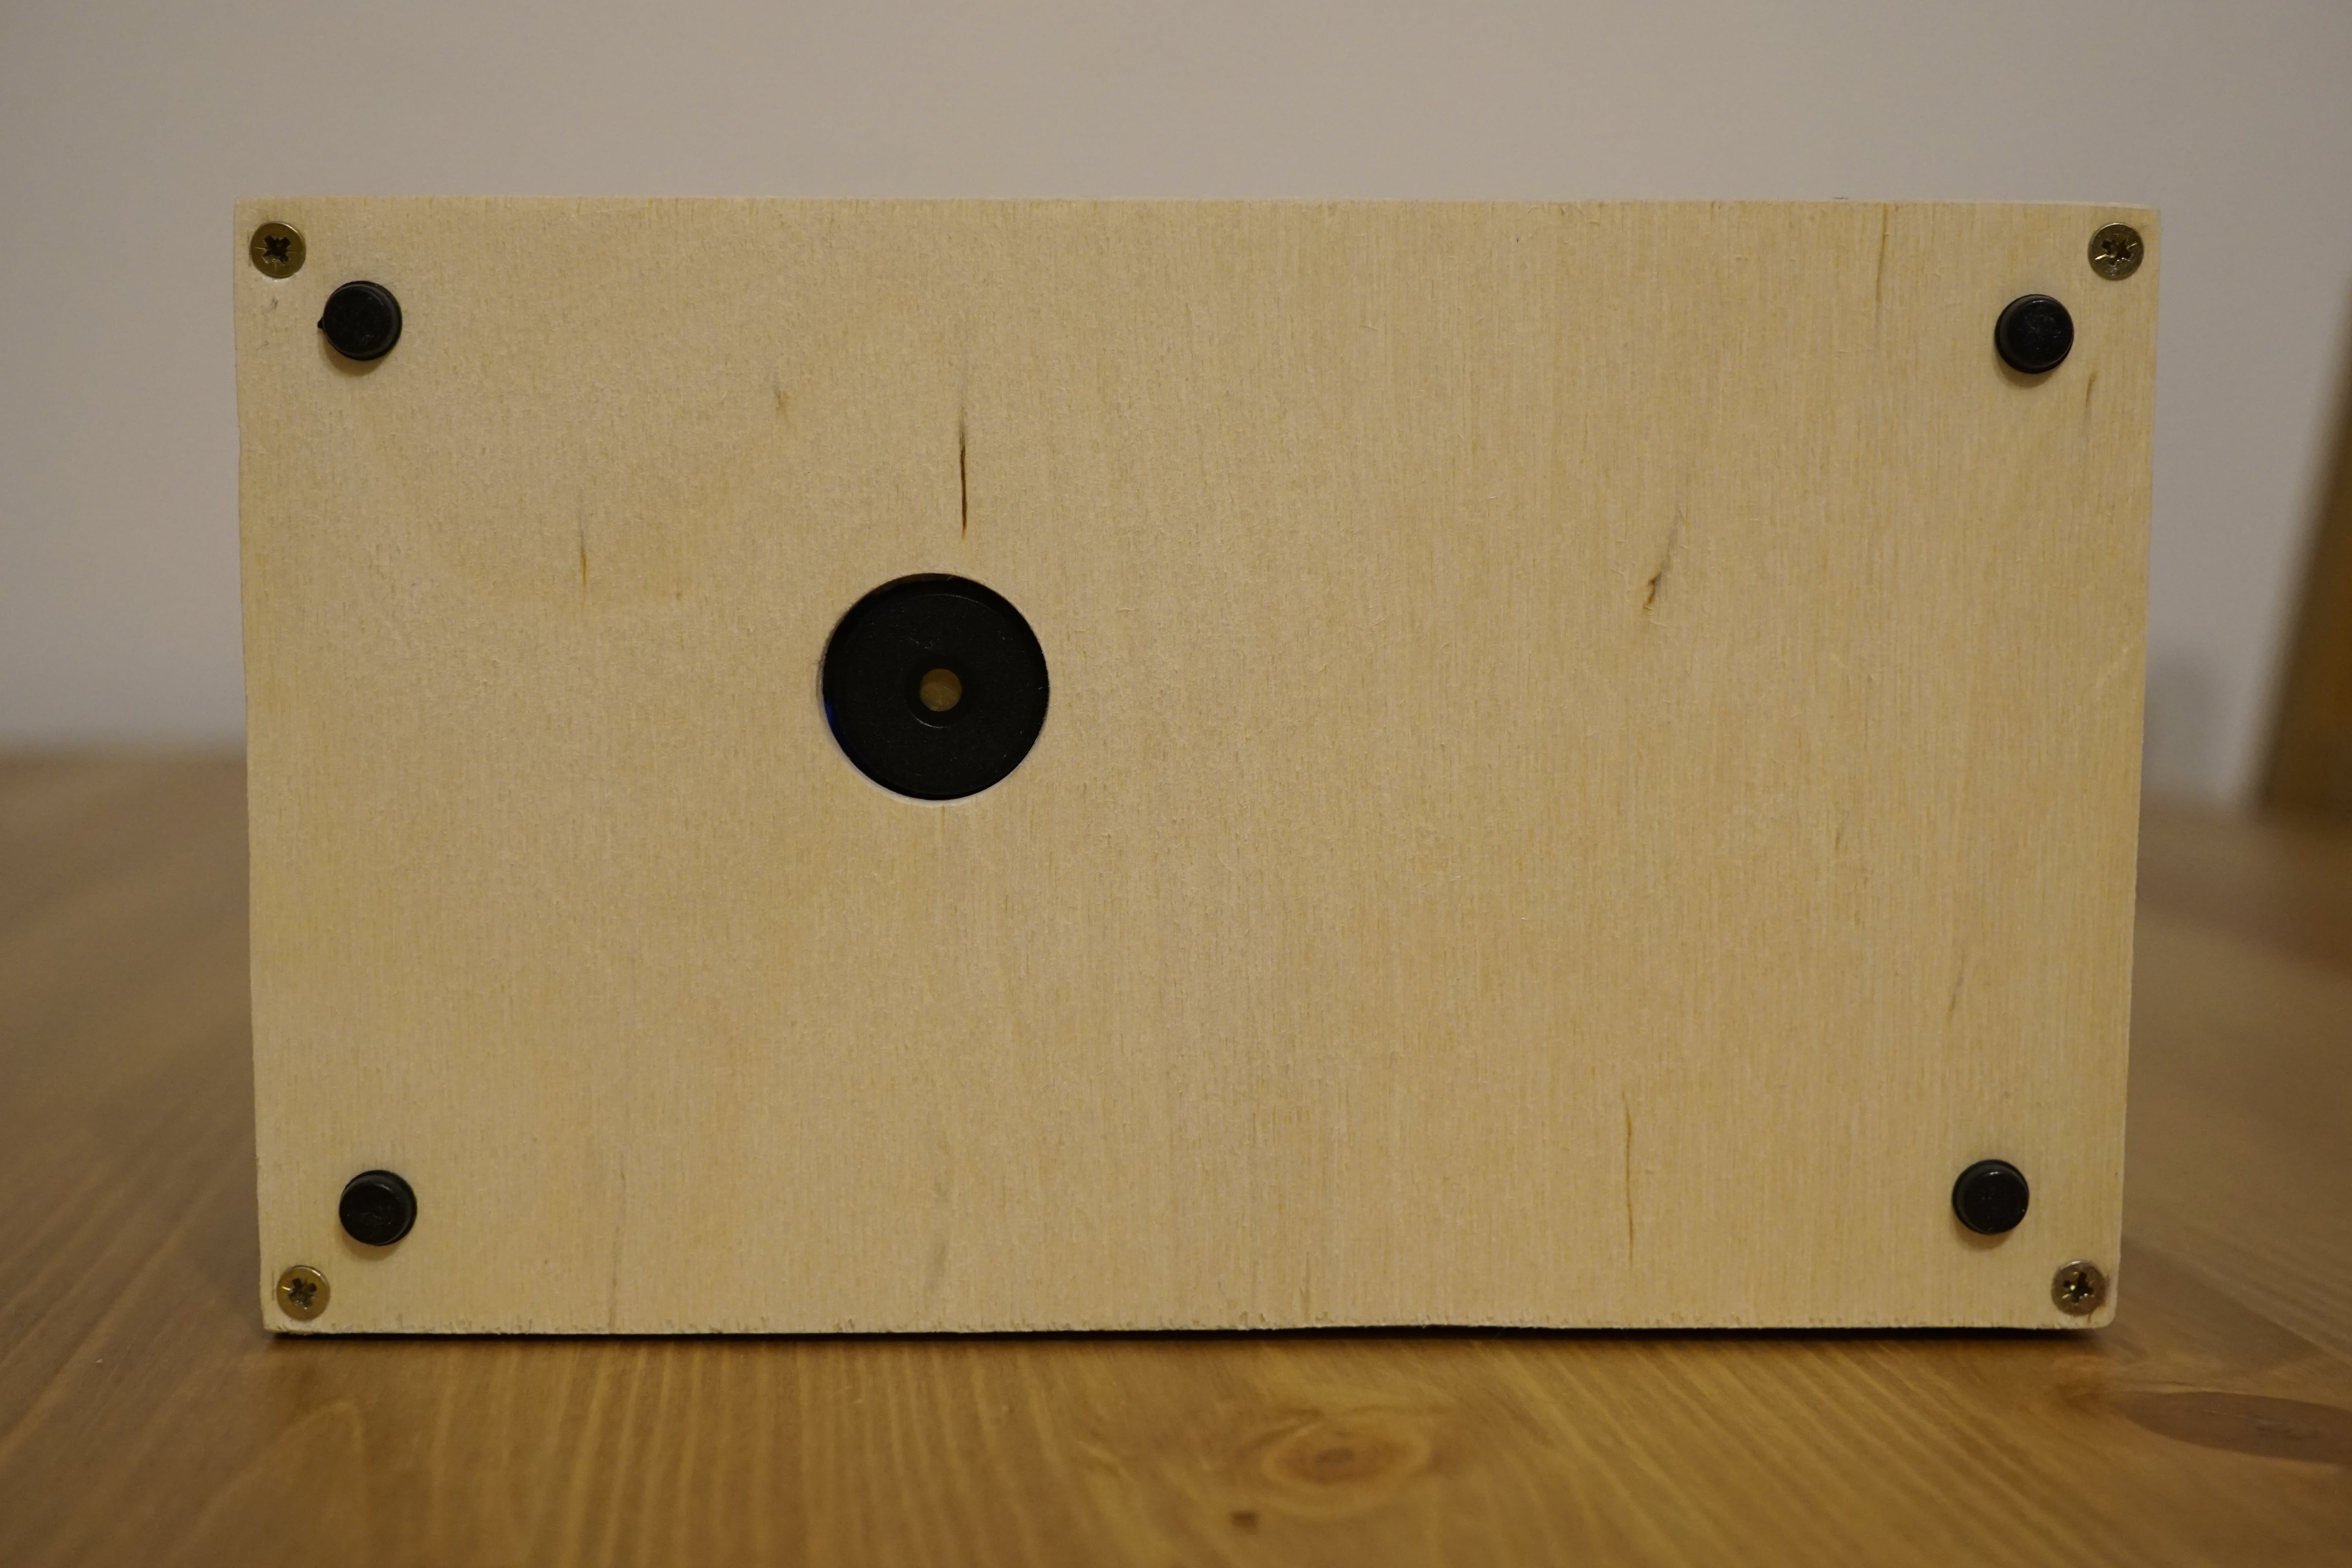 Bottom view with buzzer